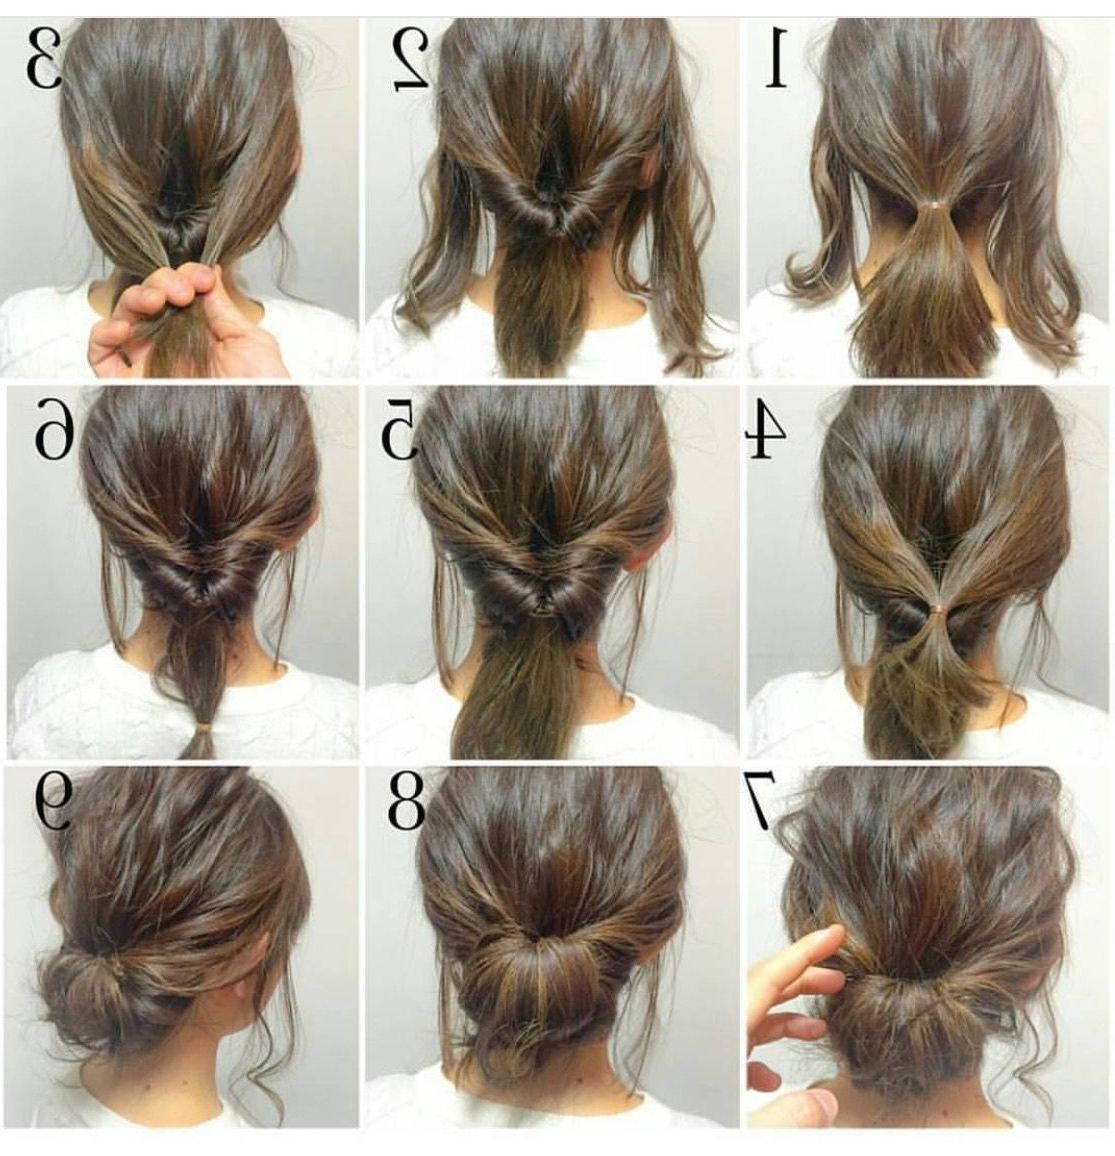 4 Messy Updos For Long Hair | Hairz | Pinterest | Updos, Hair Style Regarding Easy Long Updo Hairstyles (View 6 of 15)